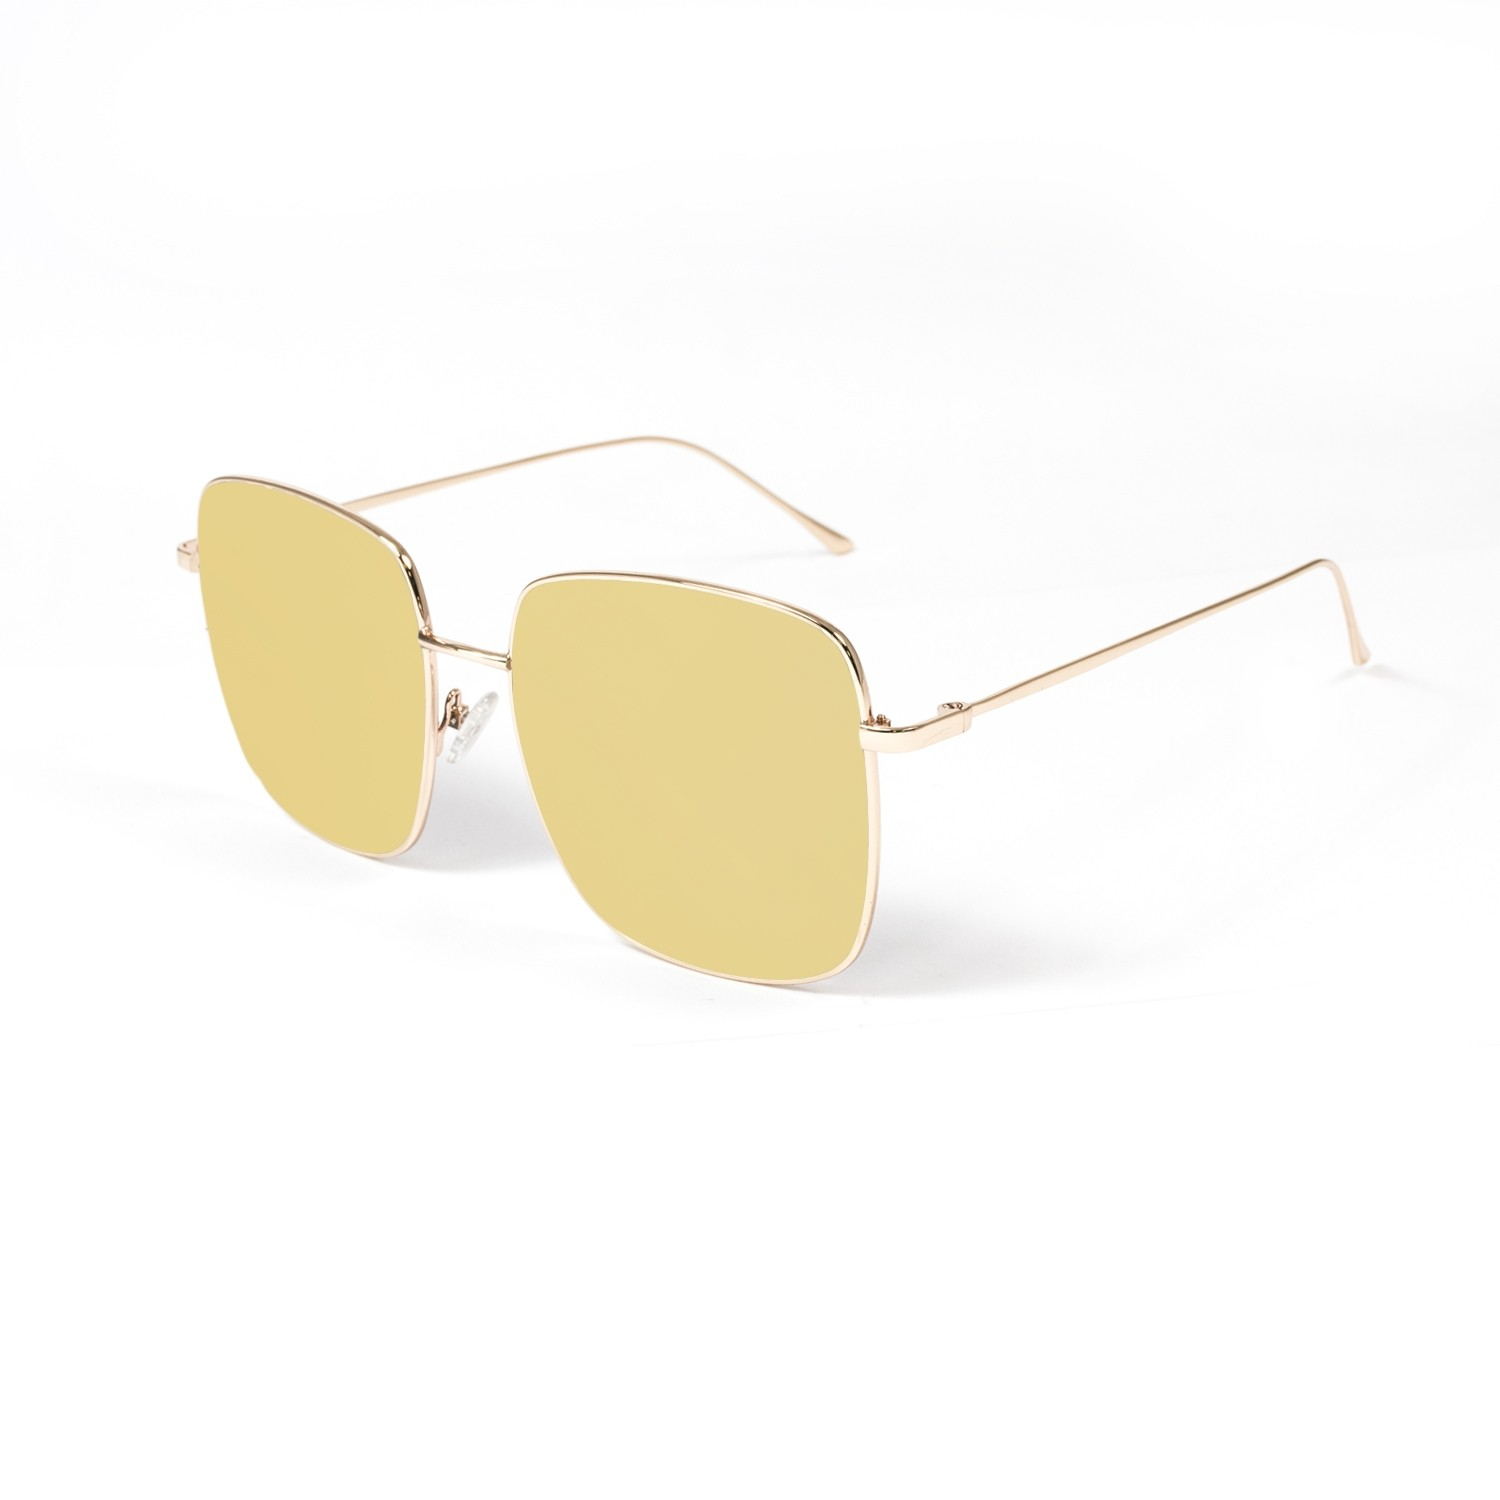 DOROTHY shiny gold frame with flat revo gold lens